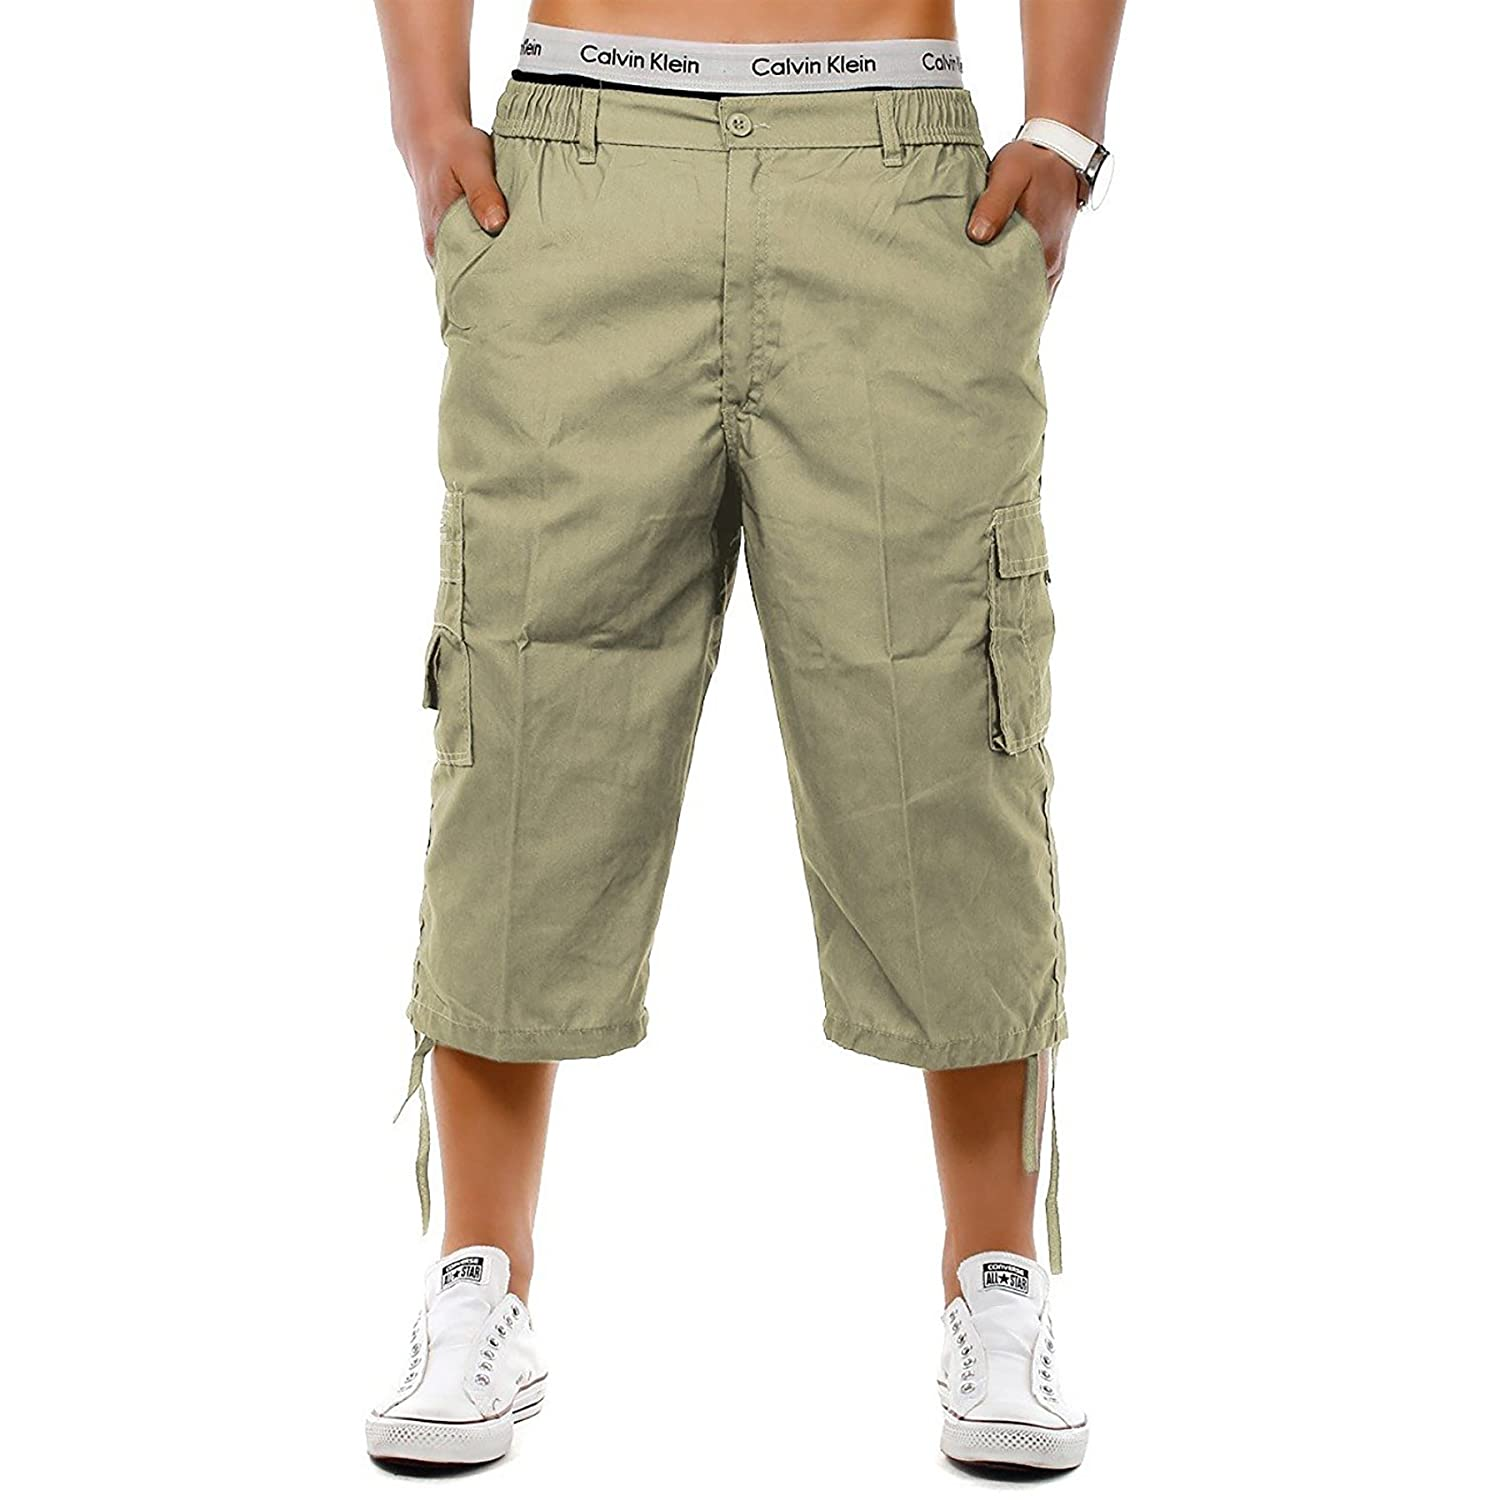 b9d09c09a99df onpointlook Mens Big Size Shorts 3 4 Combat Cargo Casual Pants Elasticated  Waist Pockets Plus Size M XL 2XL 3XL 4XL 5XL 6XL  Amazon.co.uk  Clothing